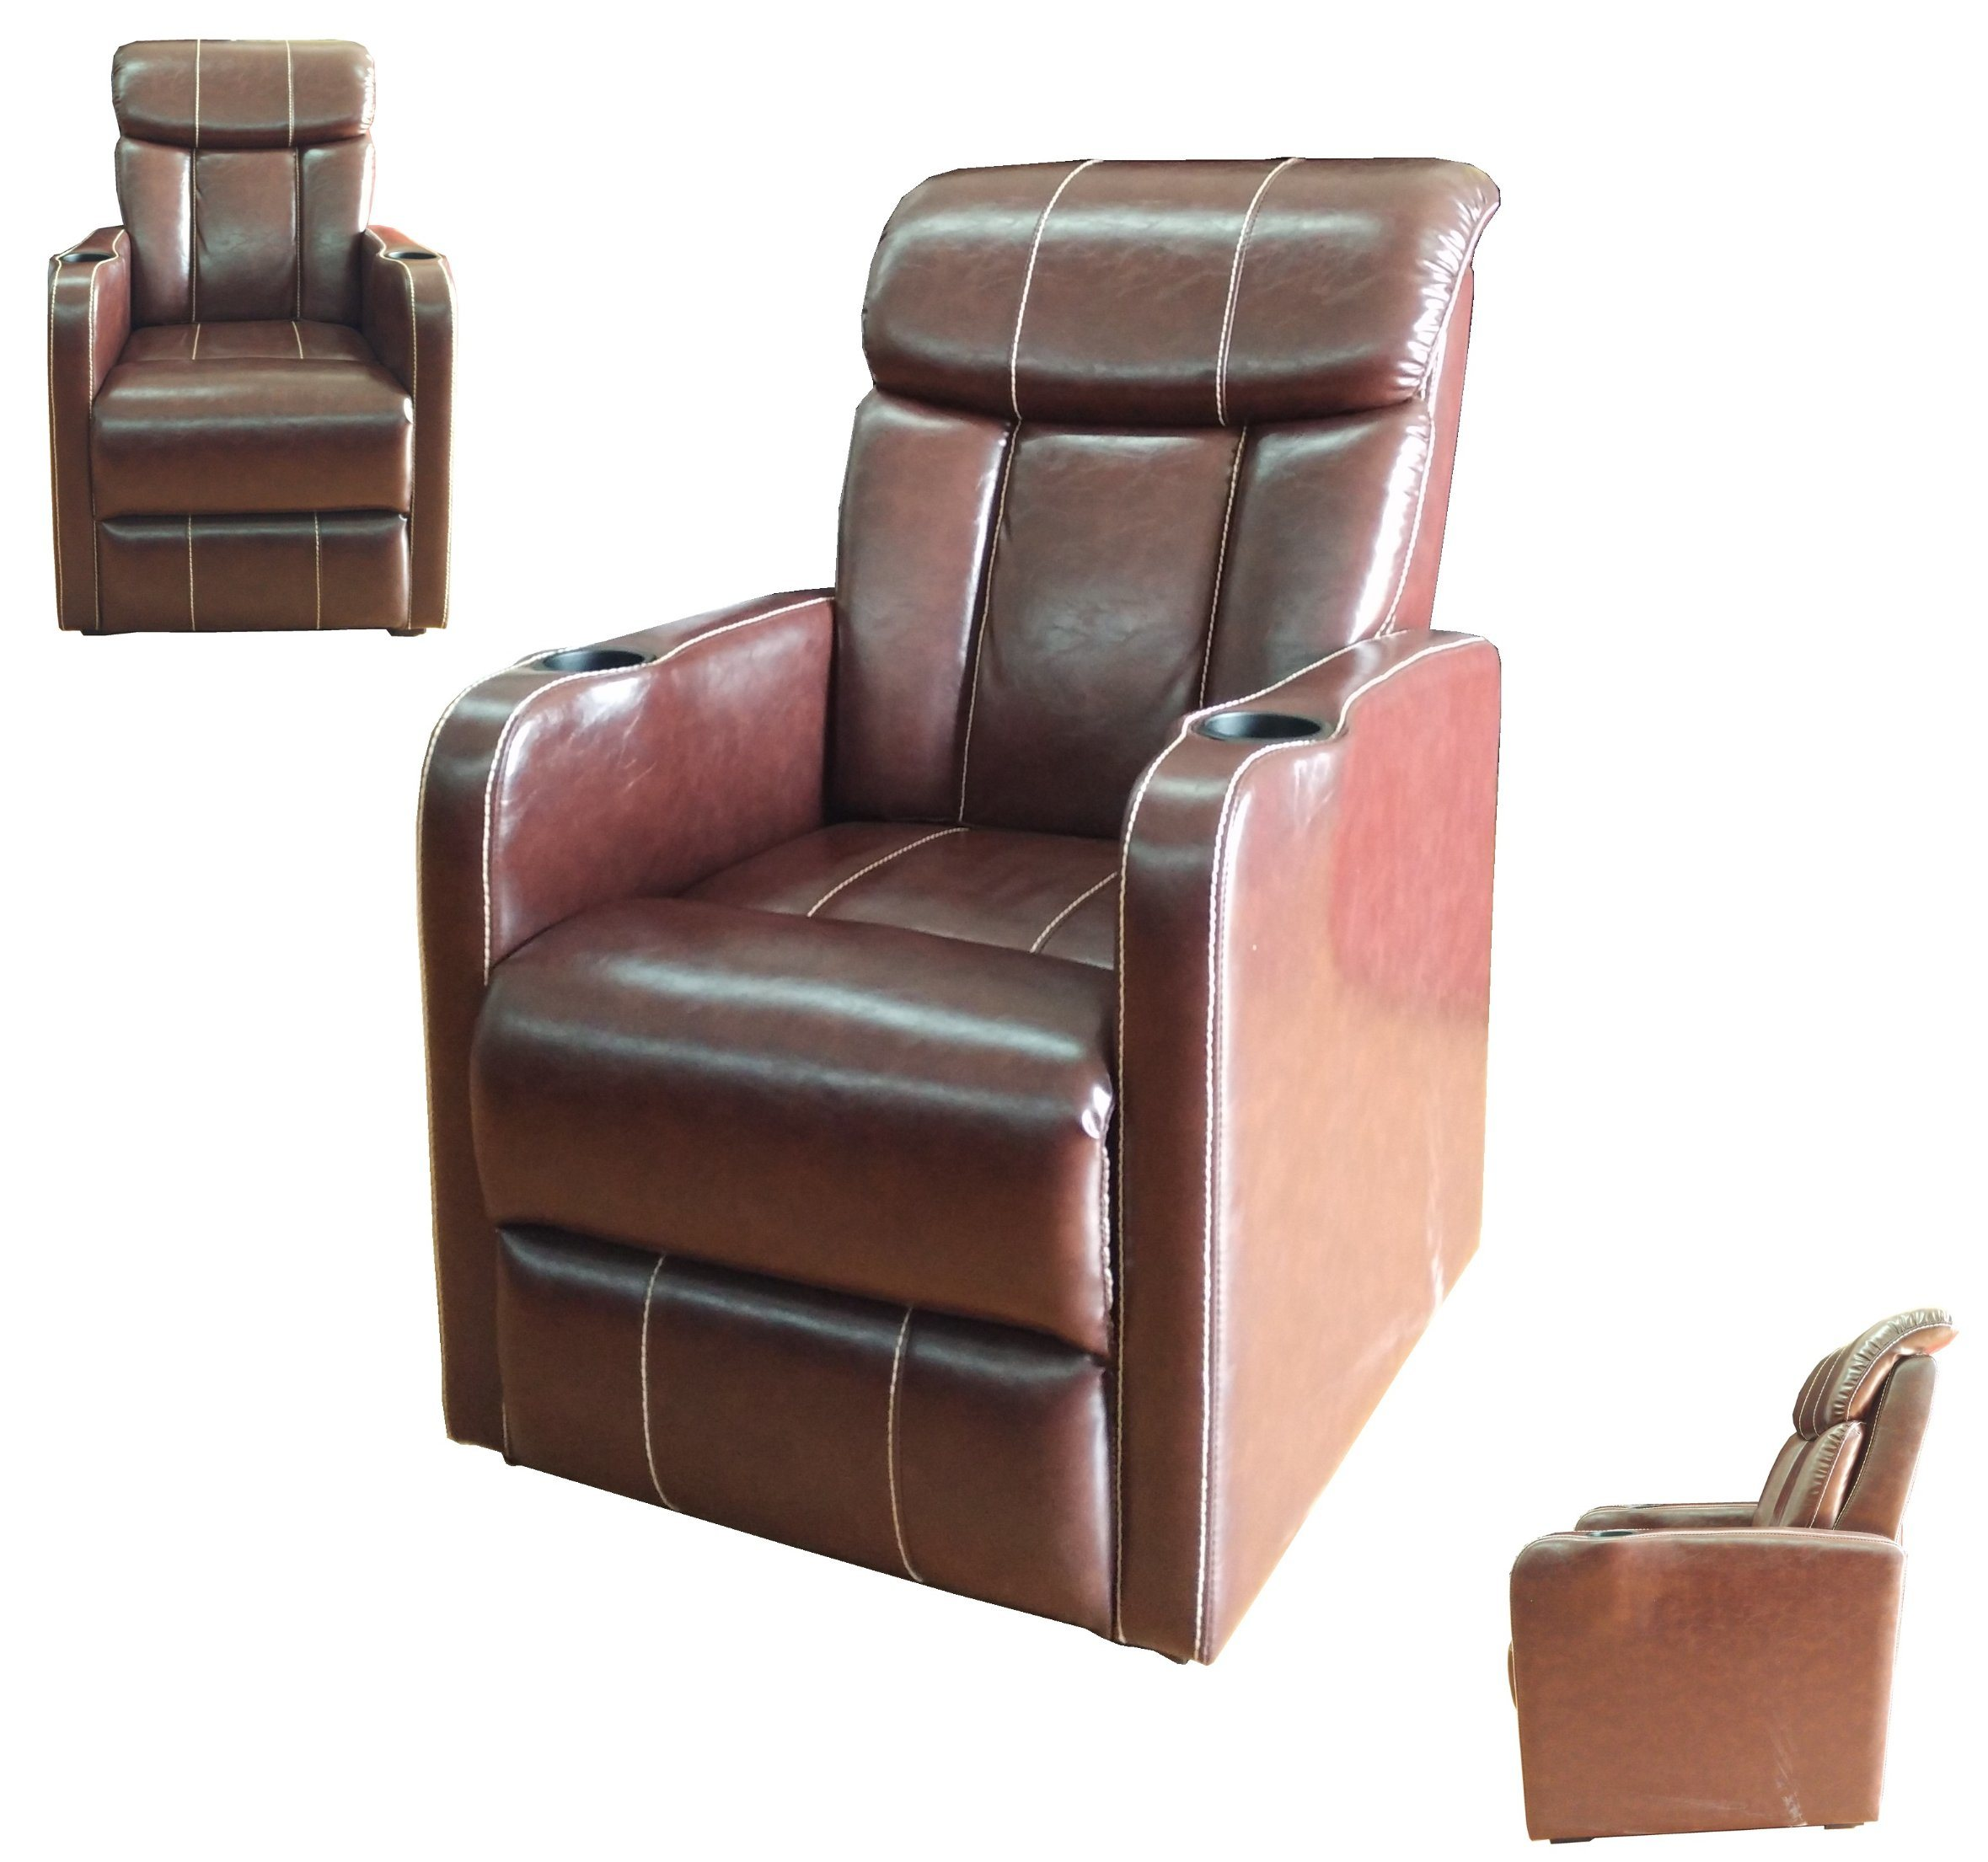 Cinema Chair VIP Theater Sofa Imax Seat (VIM 1) pictures & photos